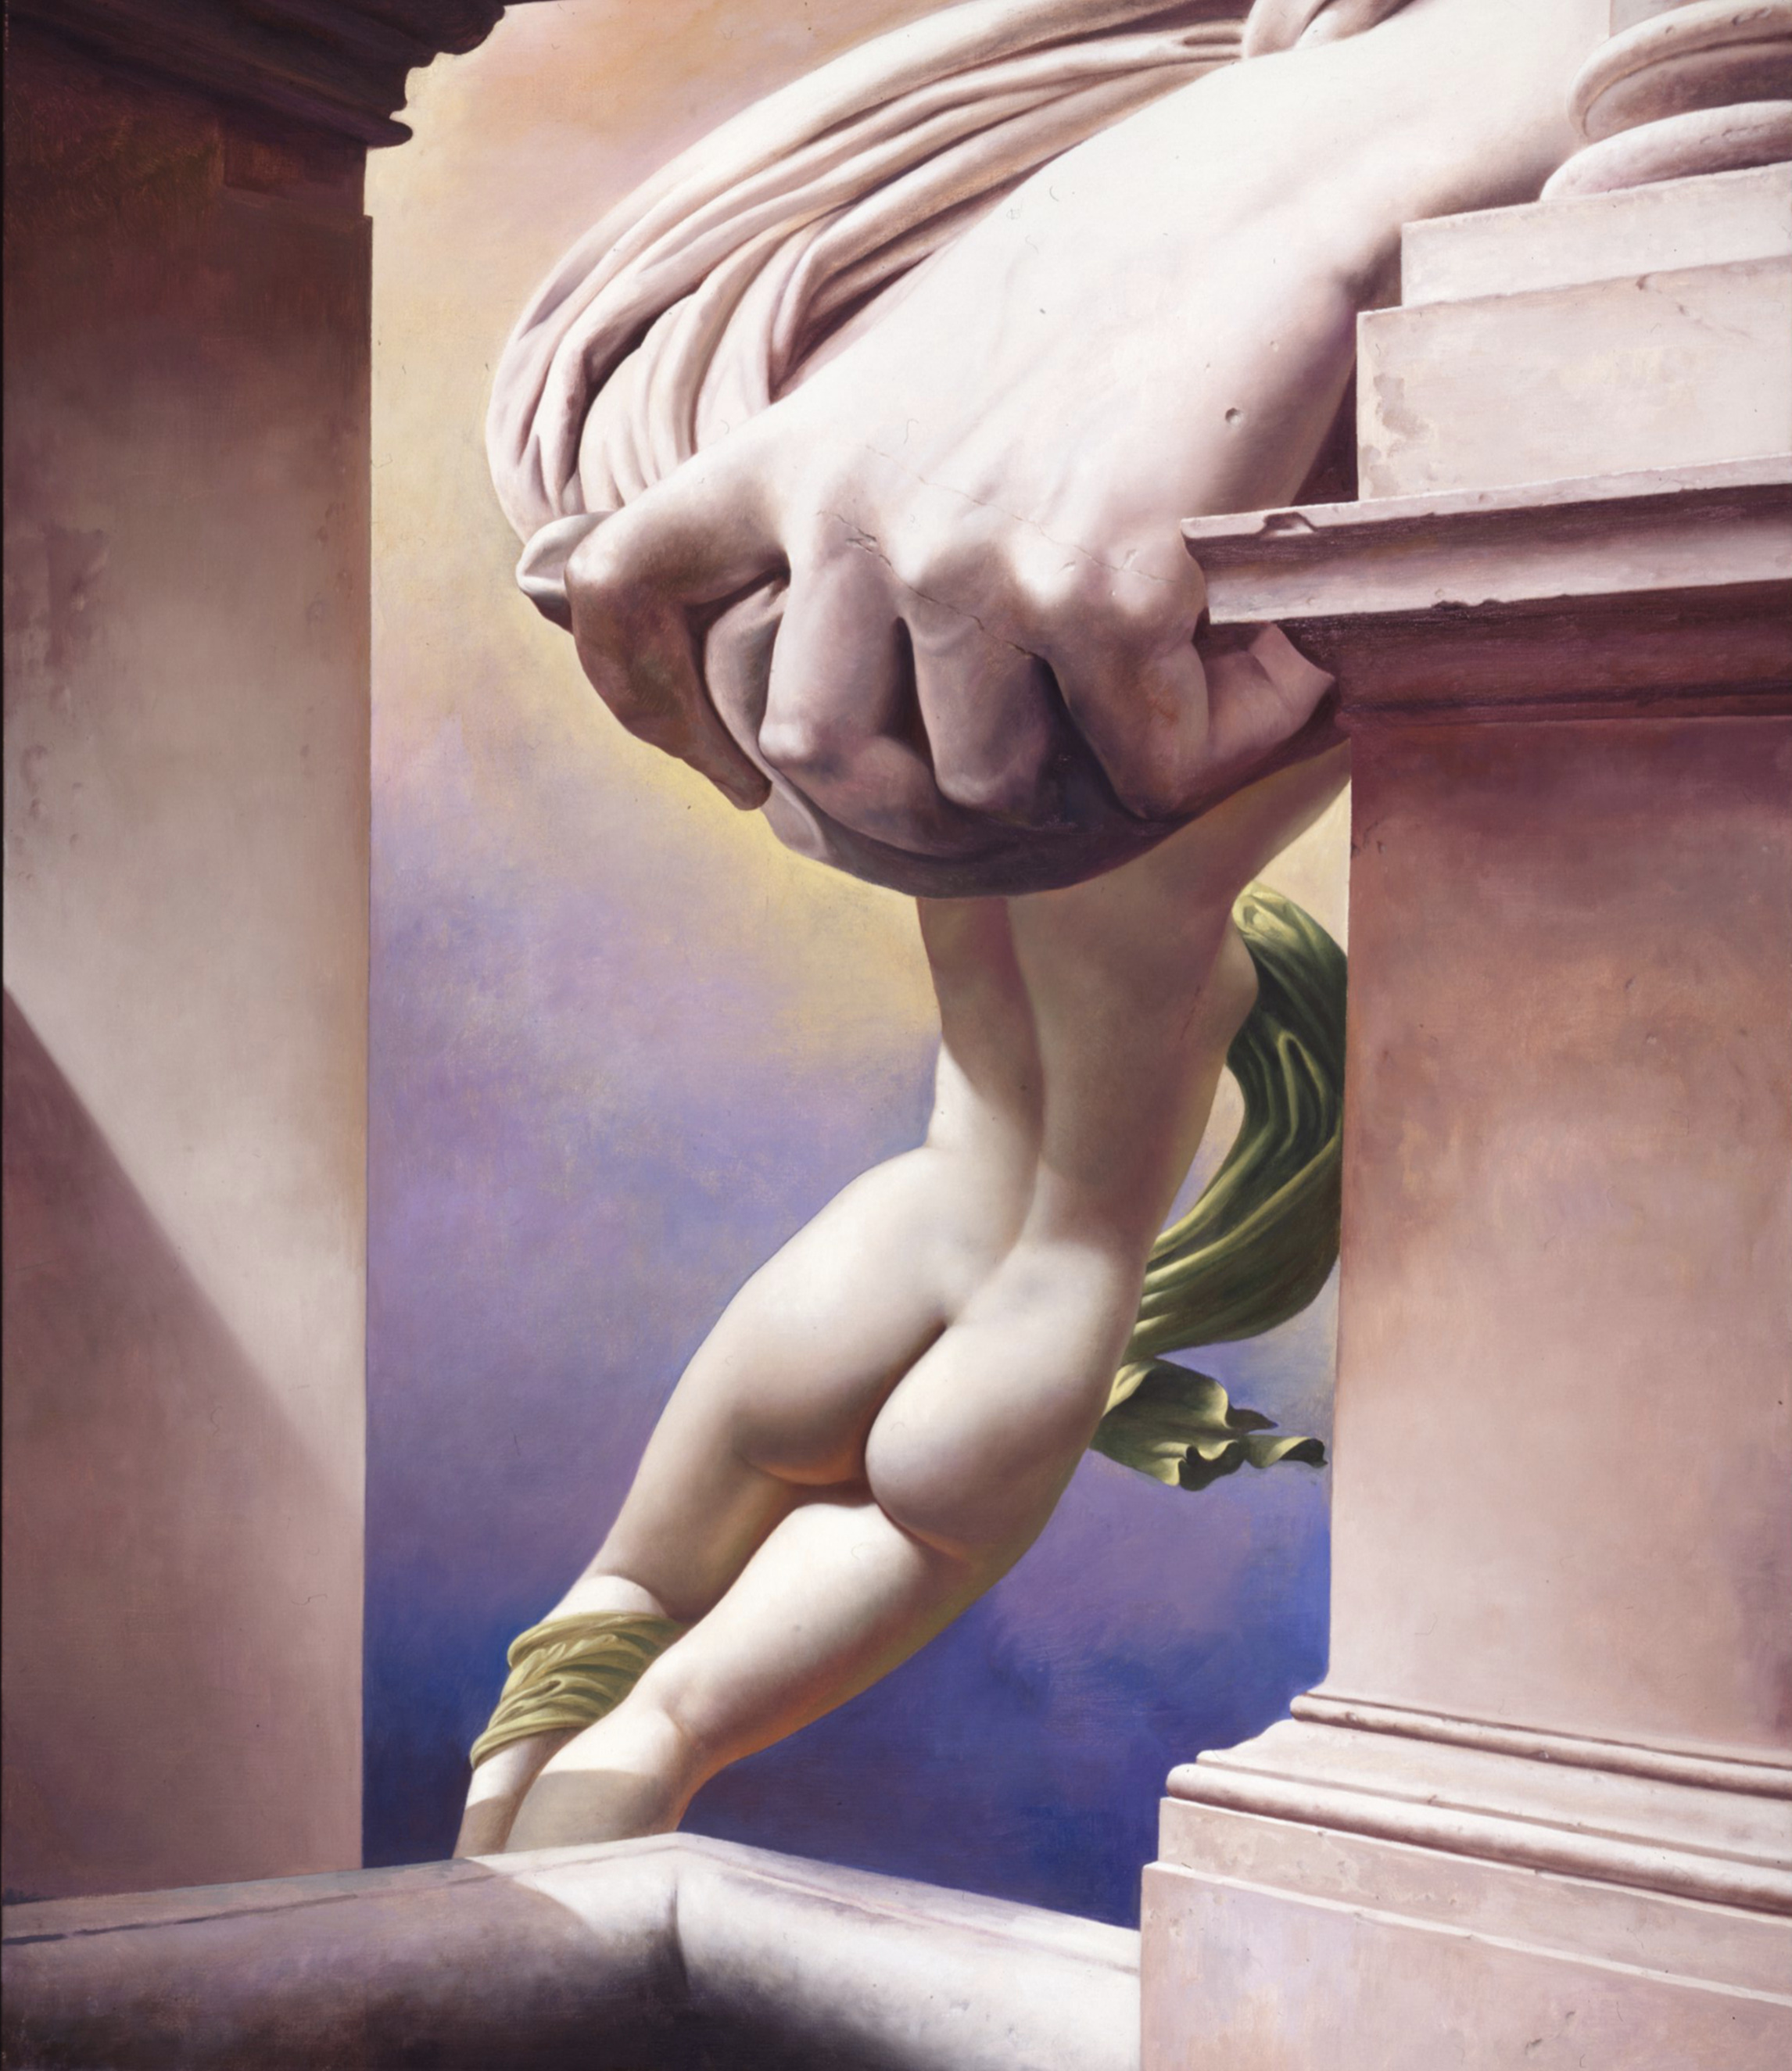 Ottavo sogno - il potere (Eighth Dream - the Power), 1993. Oil on canvas, 139 x 122 cm. New York, Collection of the Artist and Carol Lane, inv. no. 305.1993.P. 2 - - retino, 19x22 cm.jpg